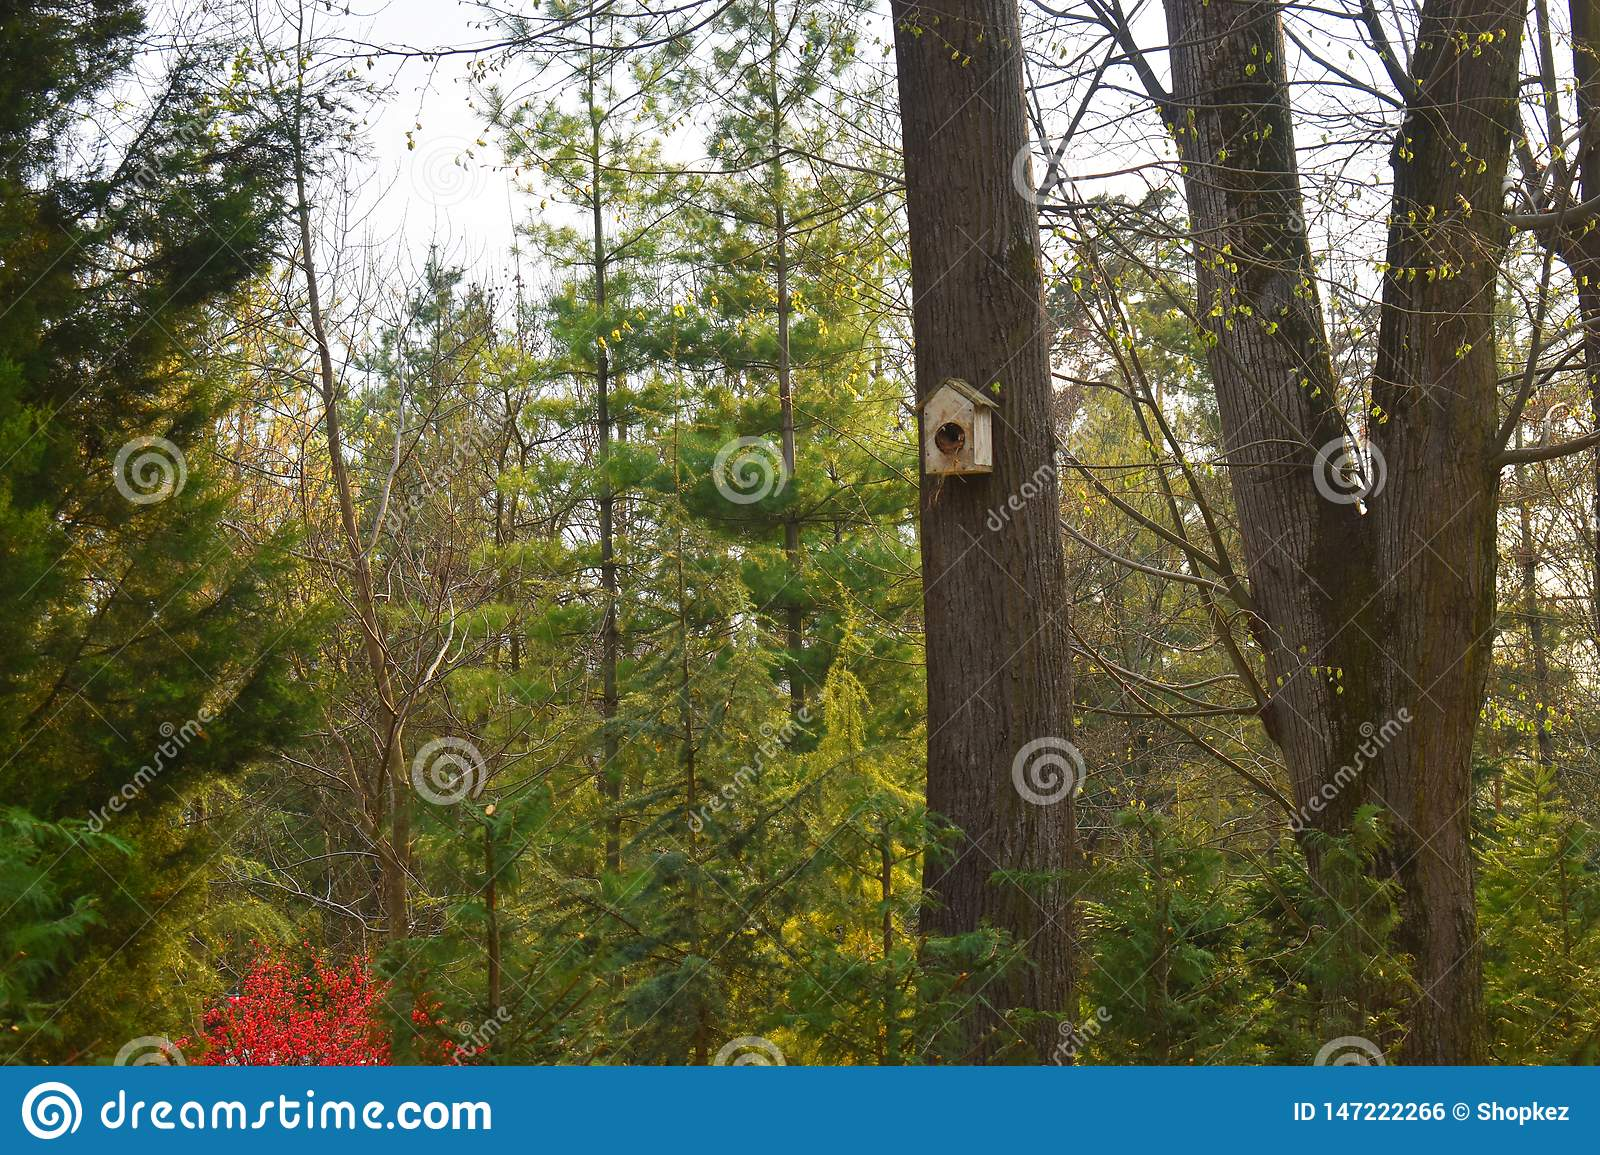 Handmade birdhouse on a tree in forest Park , hand wood shelter for birds to spend the winter